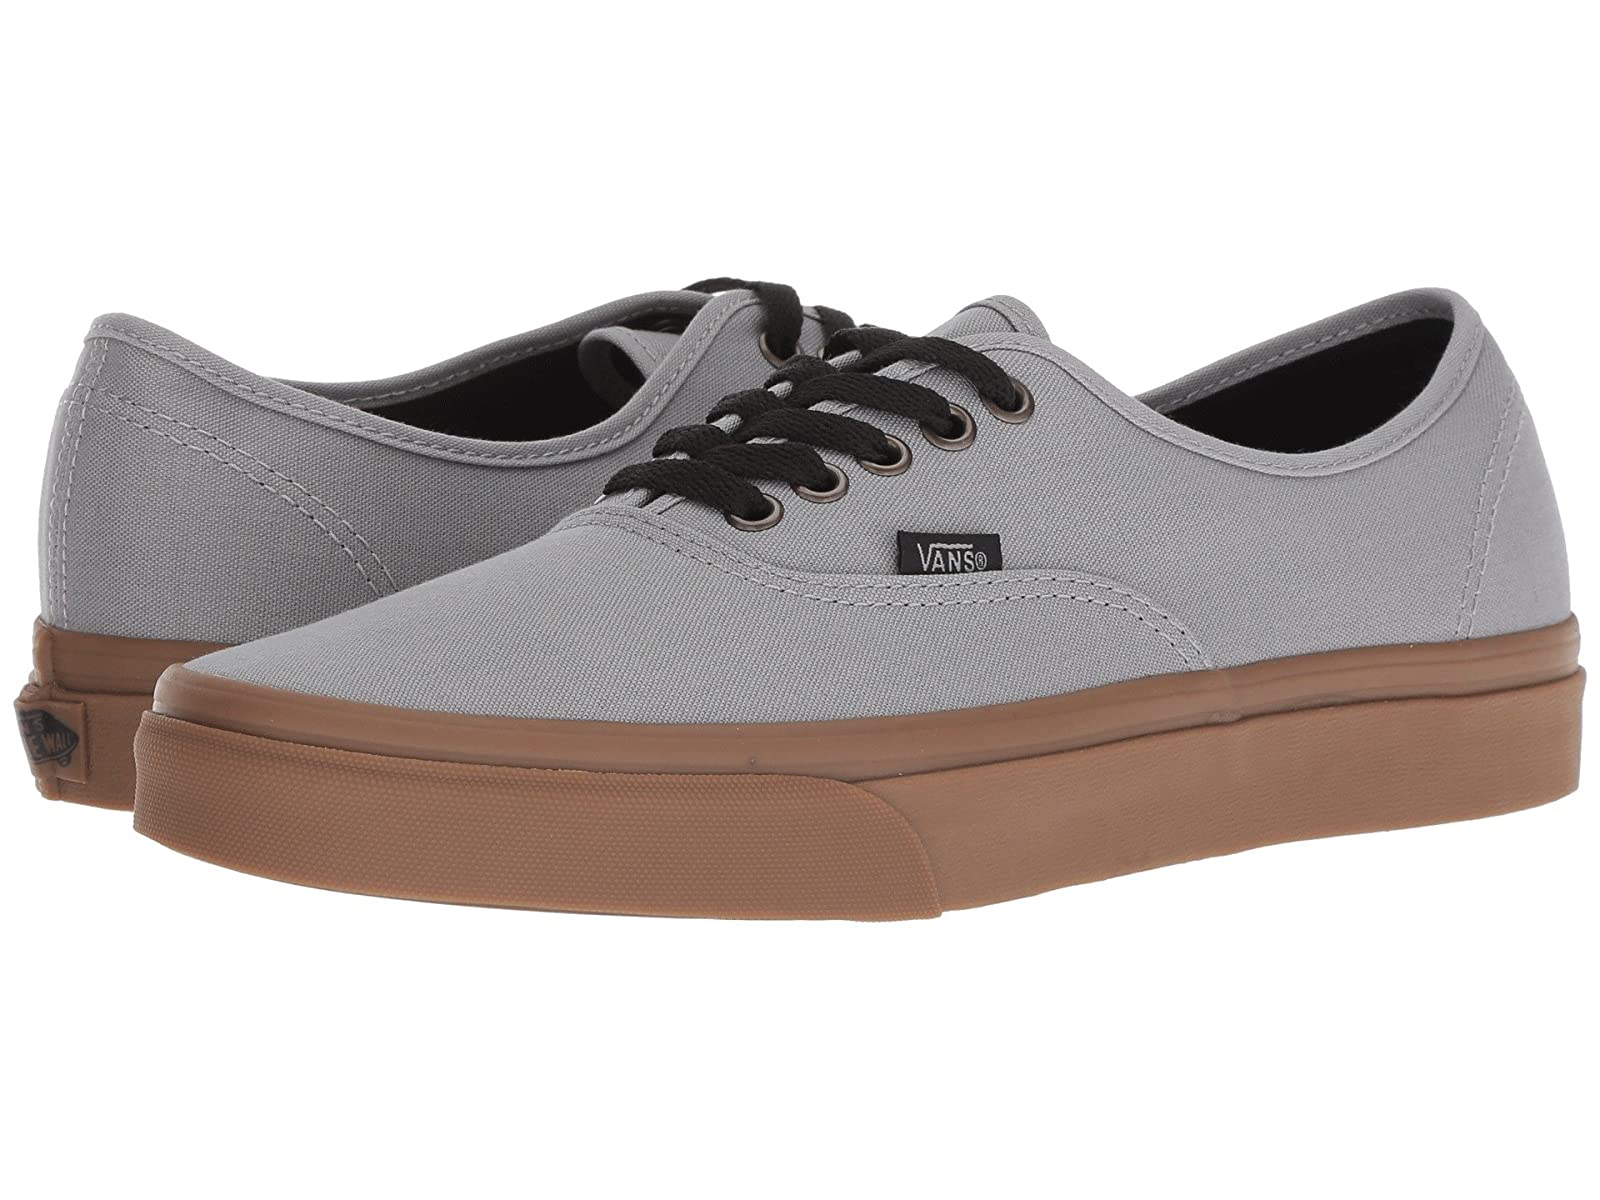 Vans Authentic™Atmospheric grades have affordable shoes